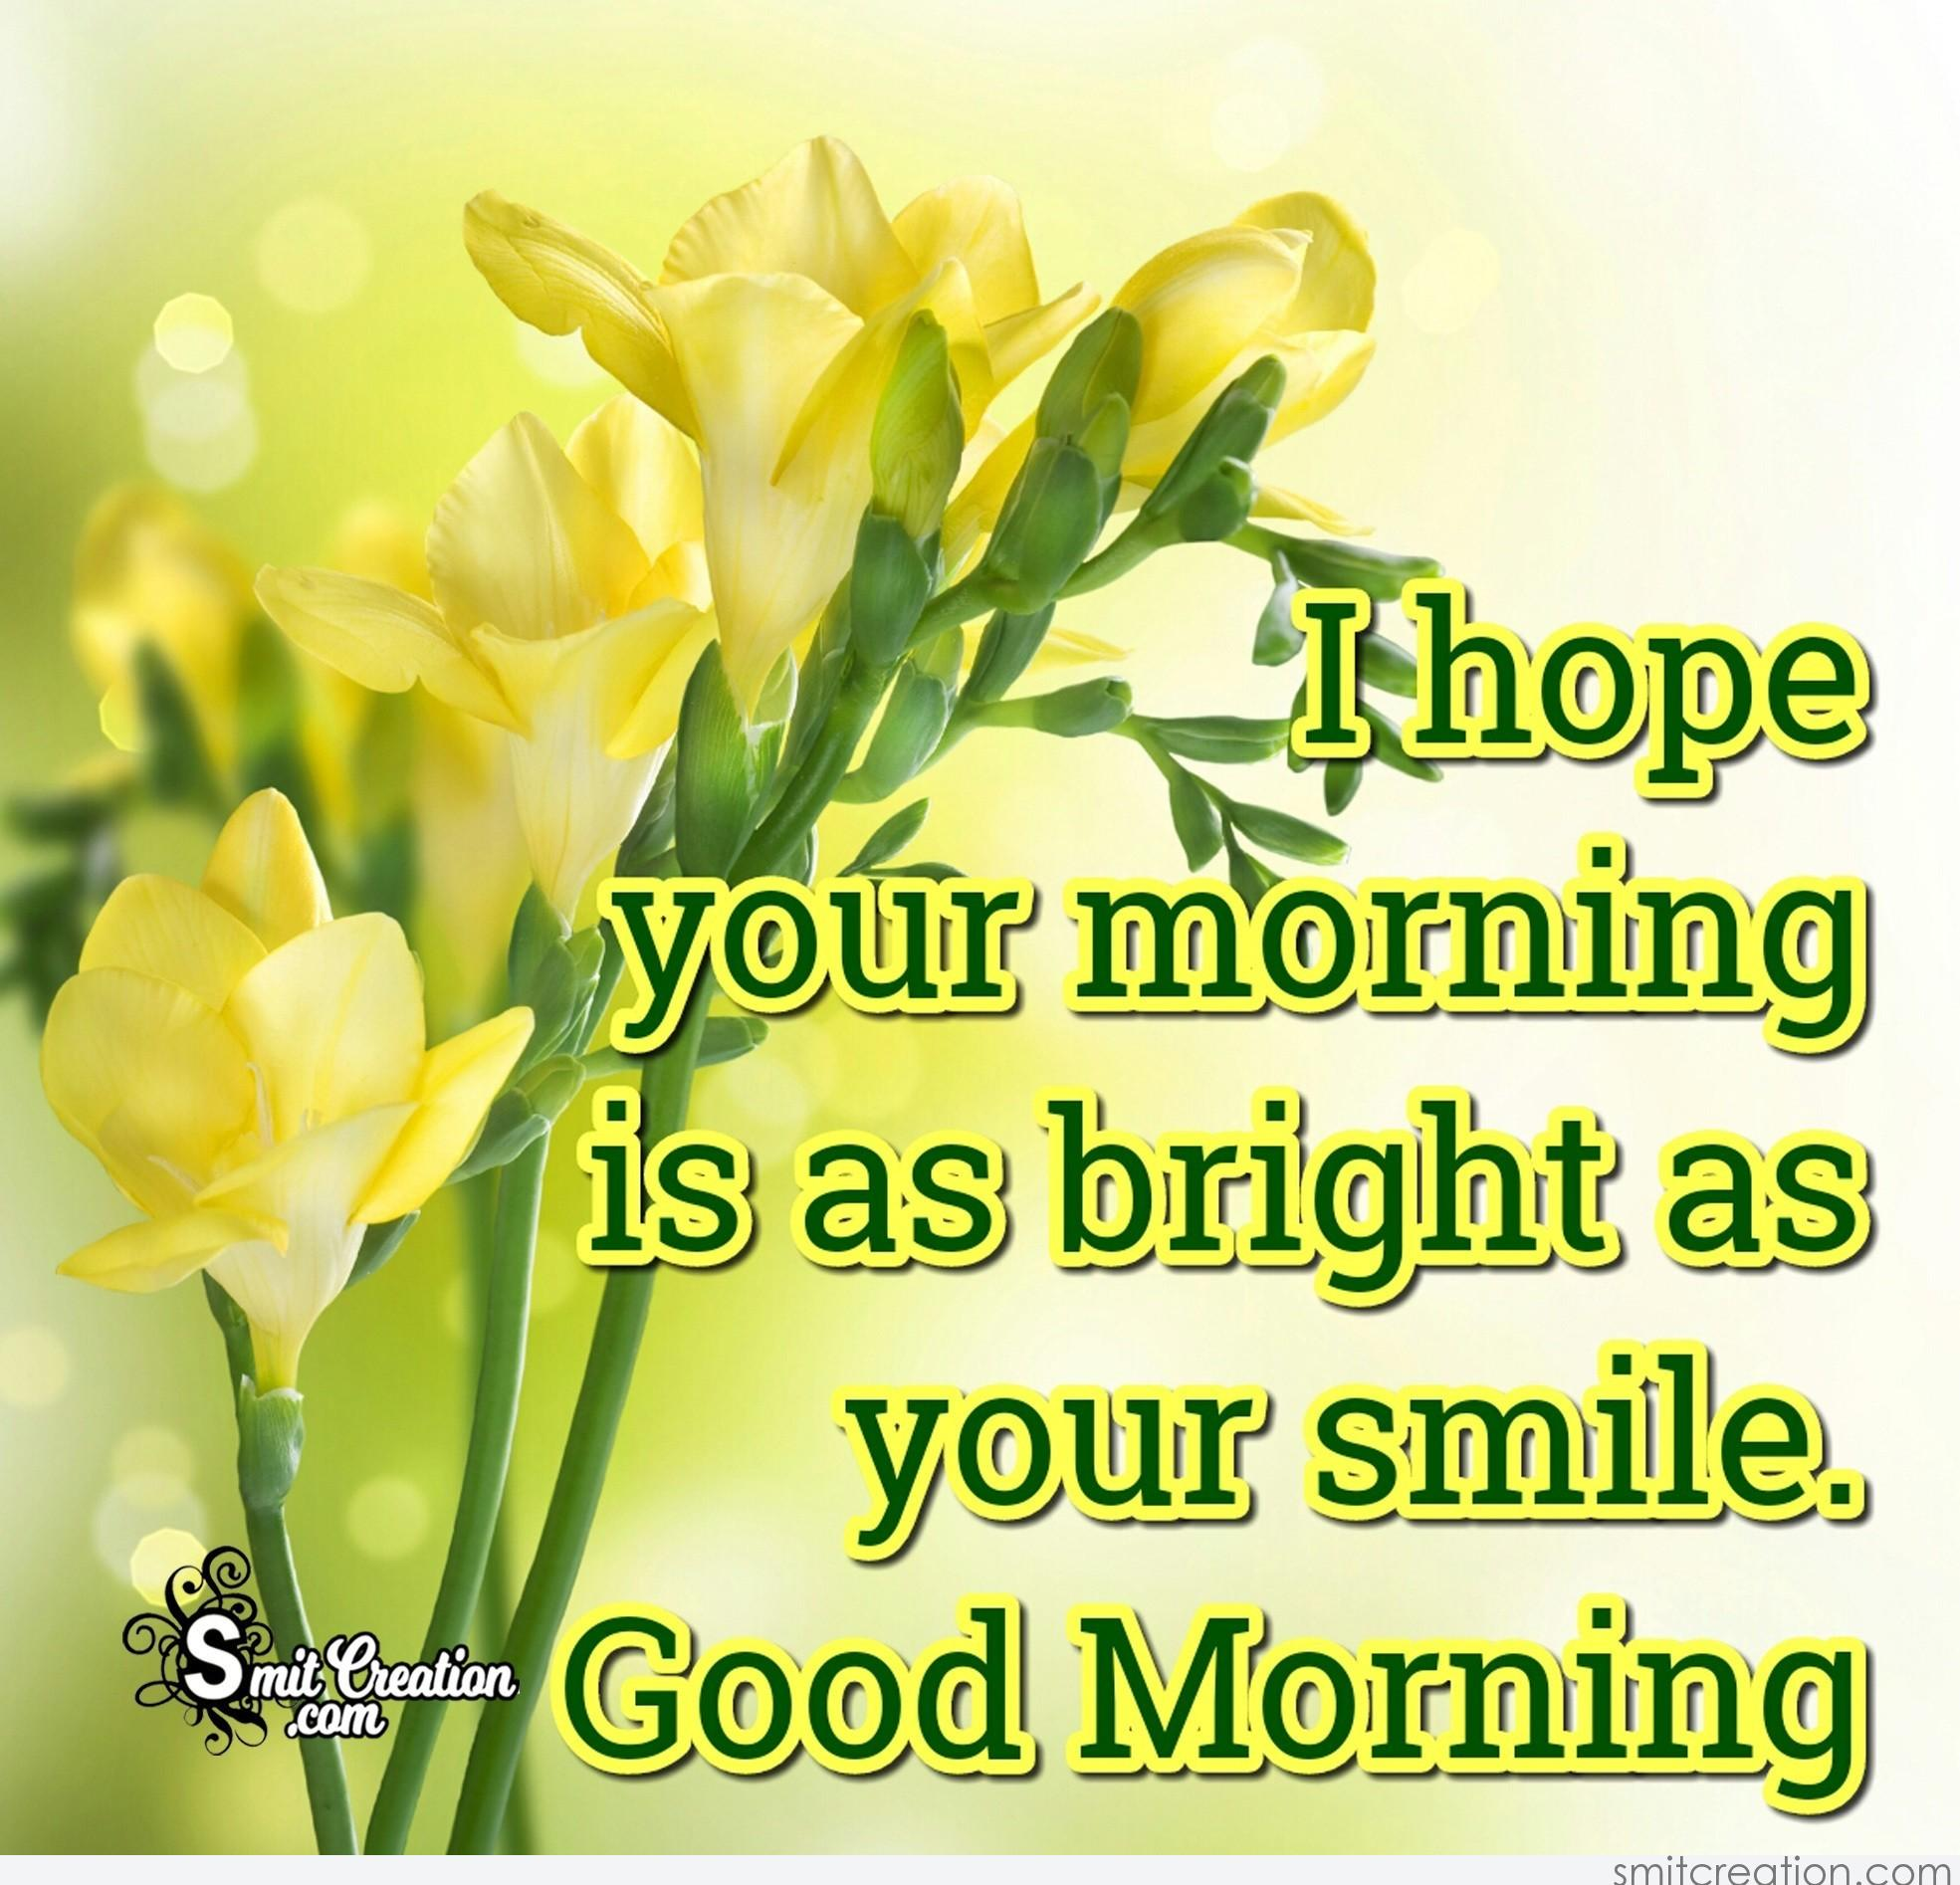 Good Morning Smile Pictures and Graphics - SmitCreation.com